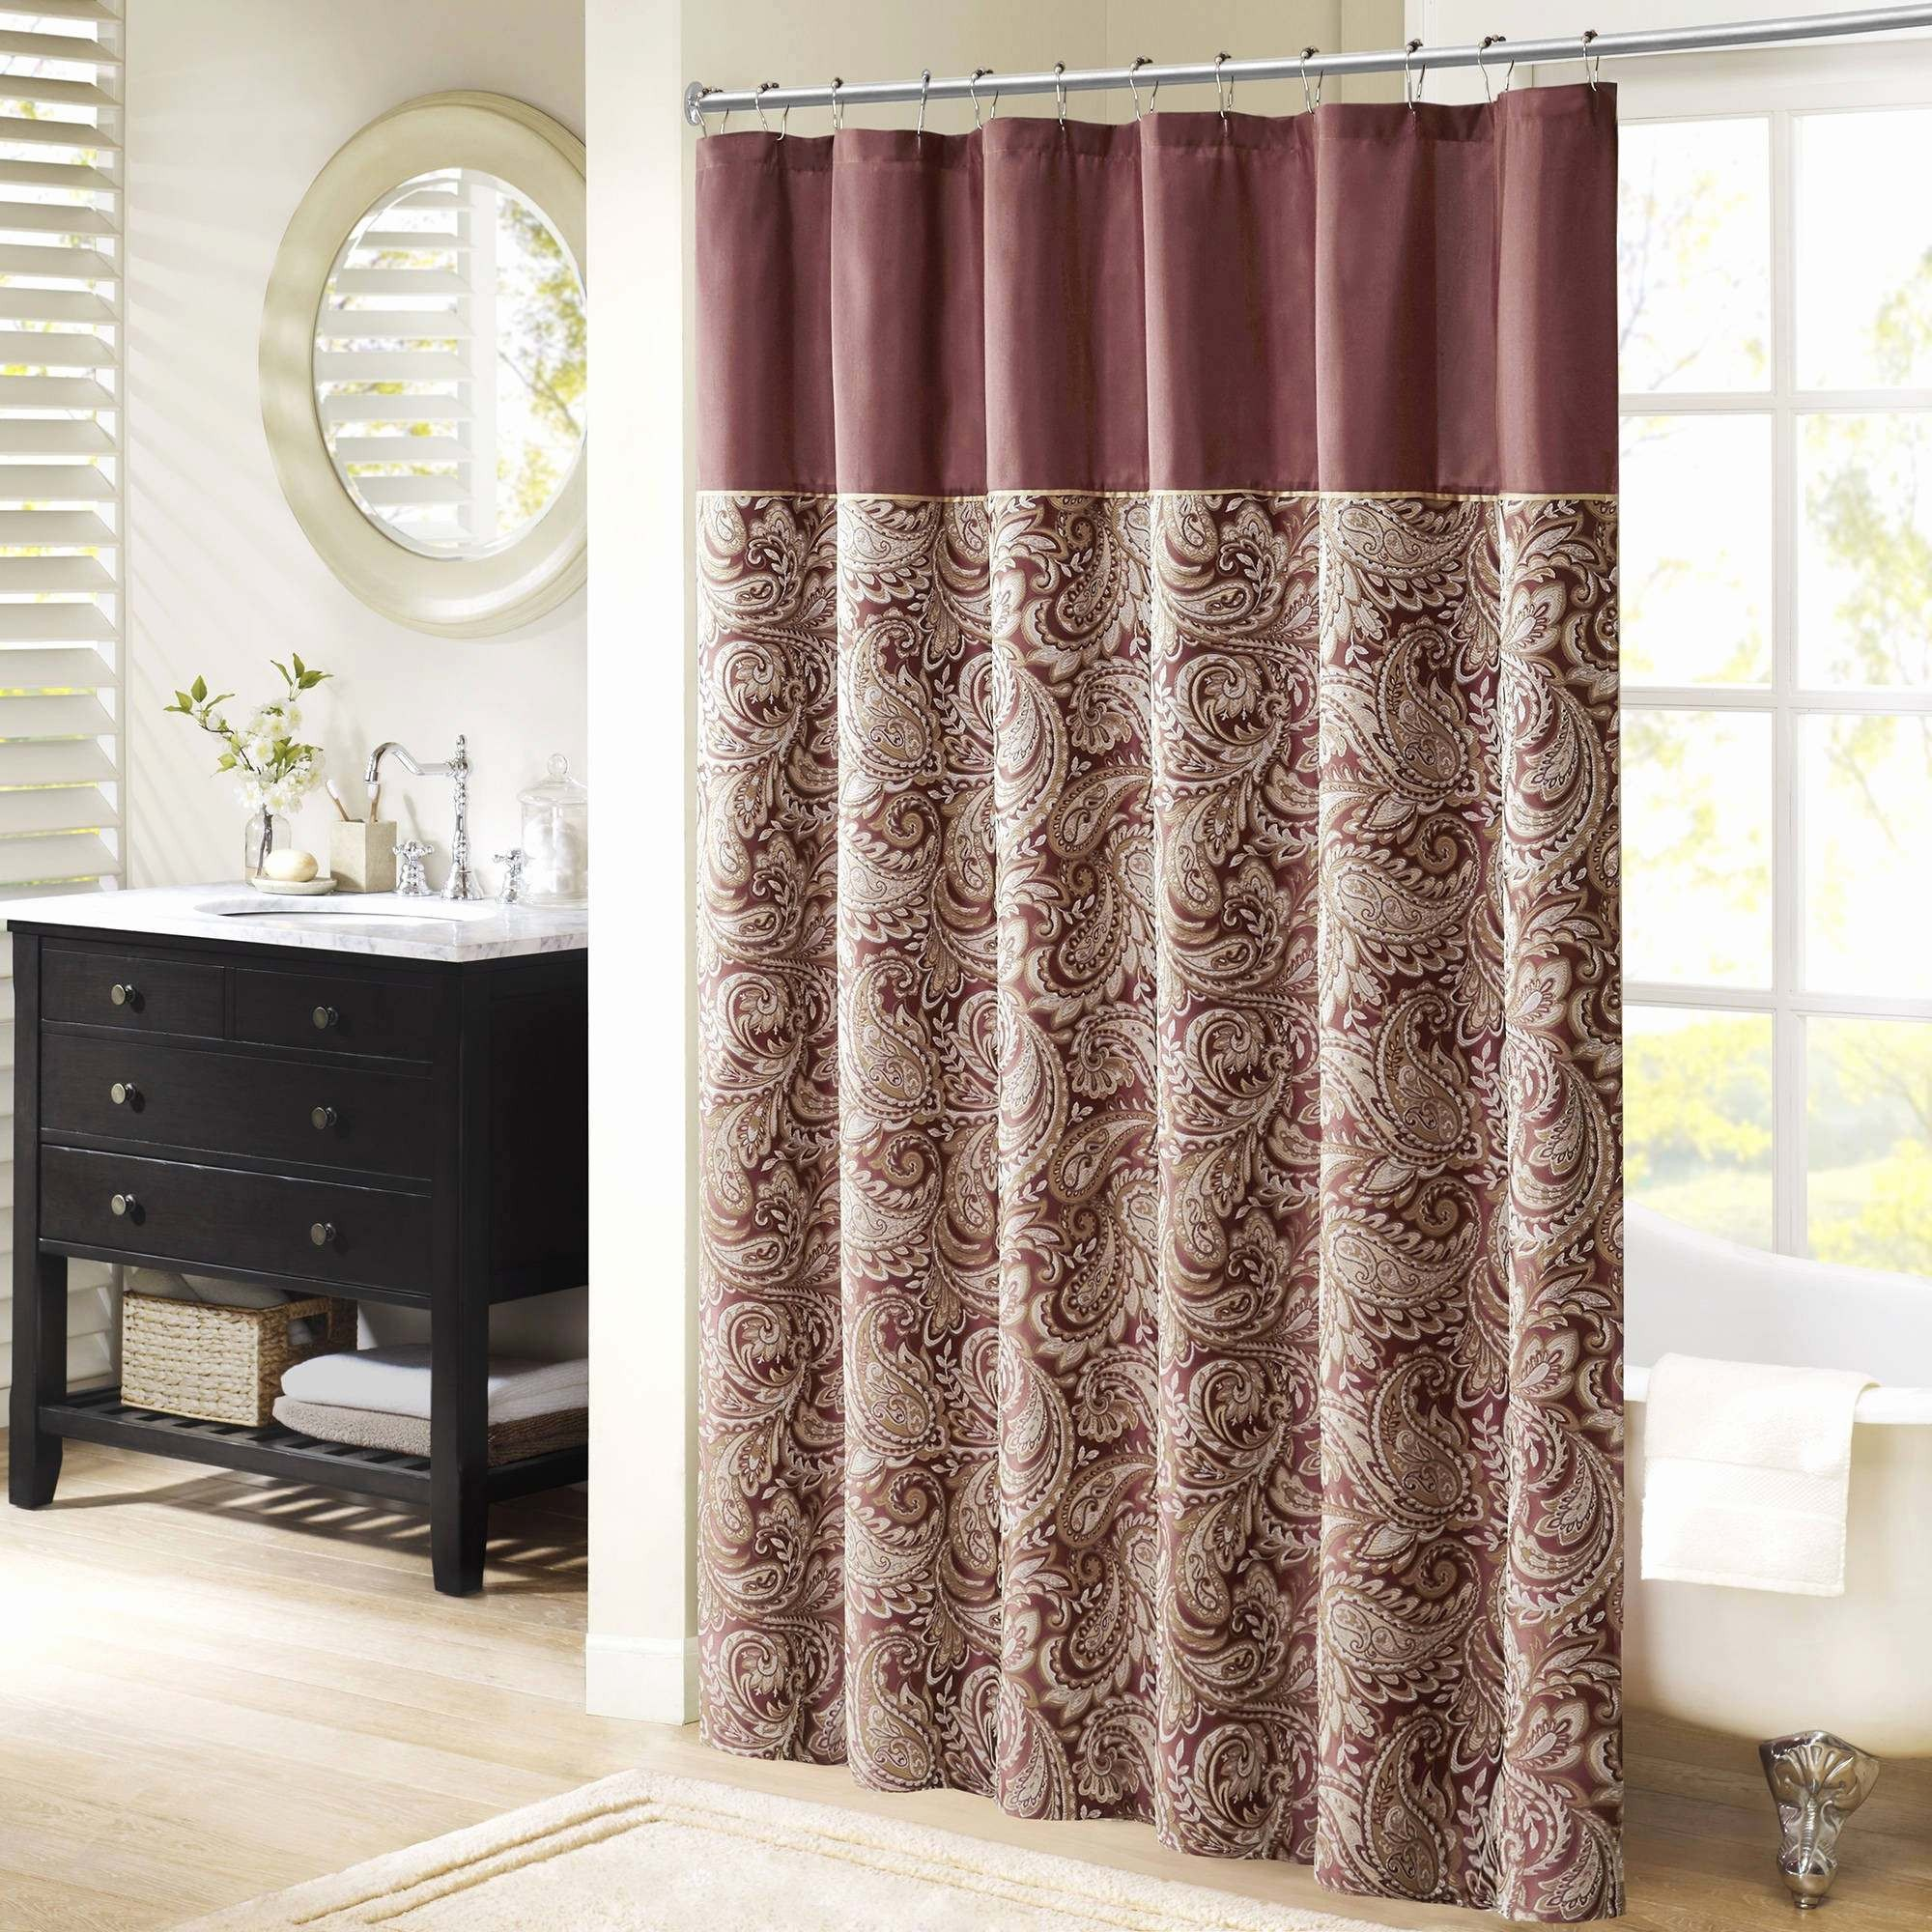 Jcpenney Window Curtains Clearance